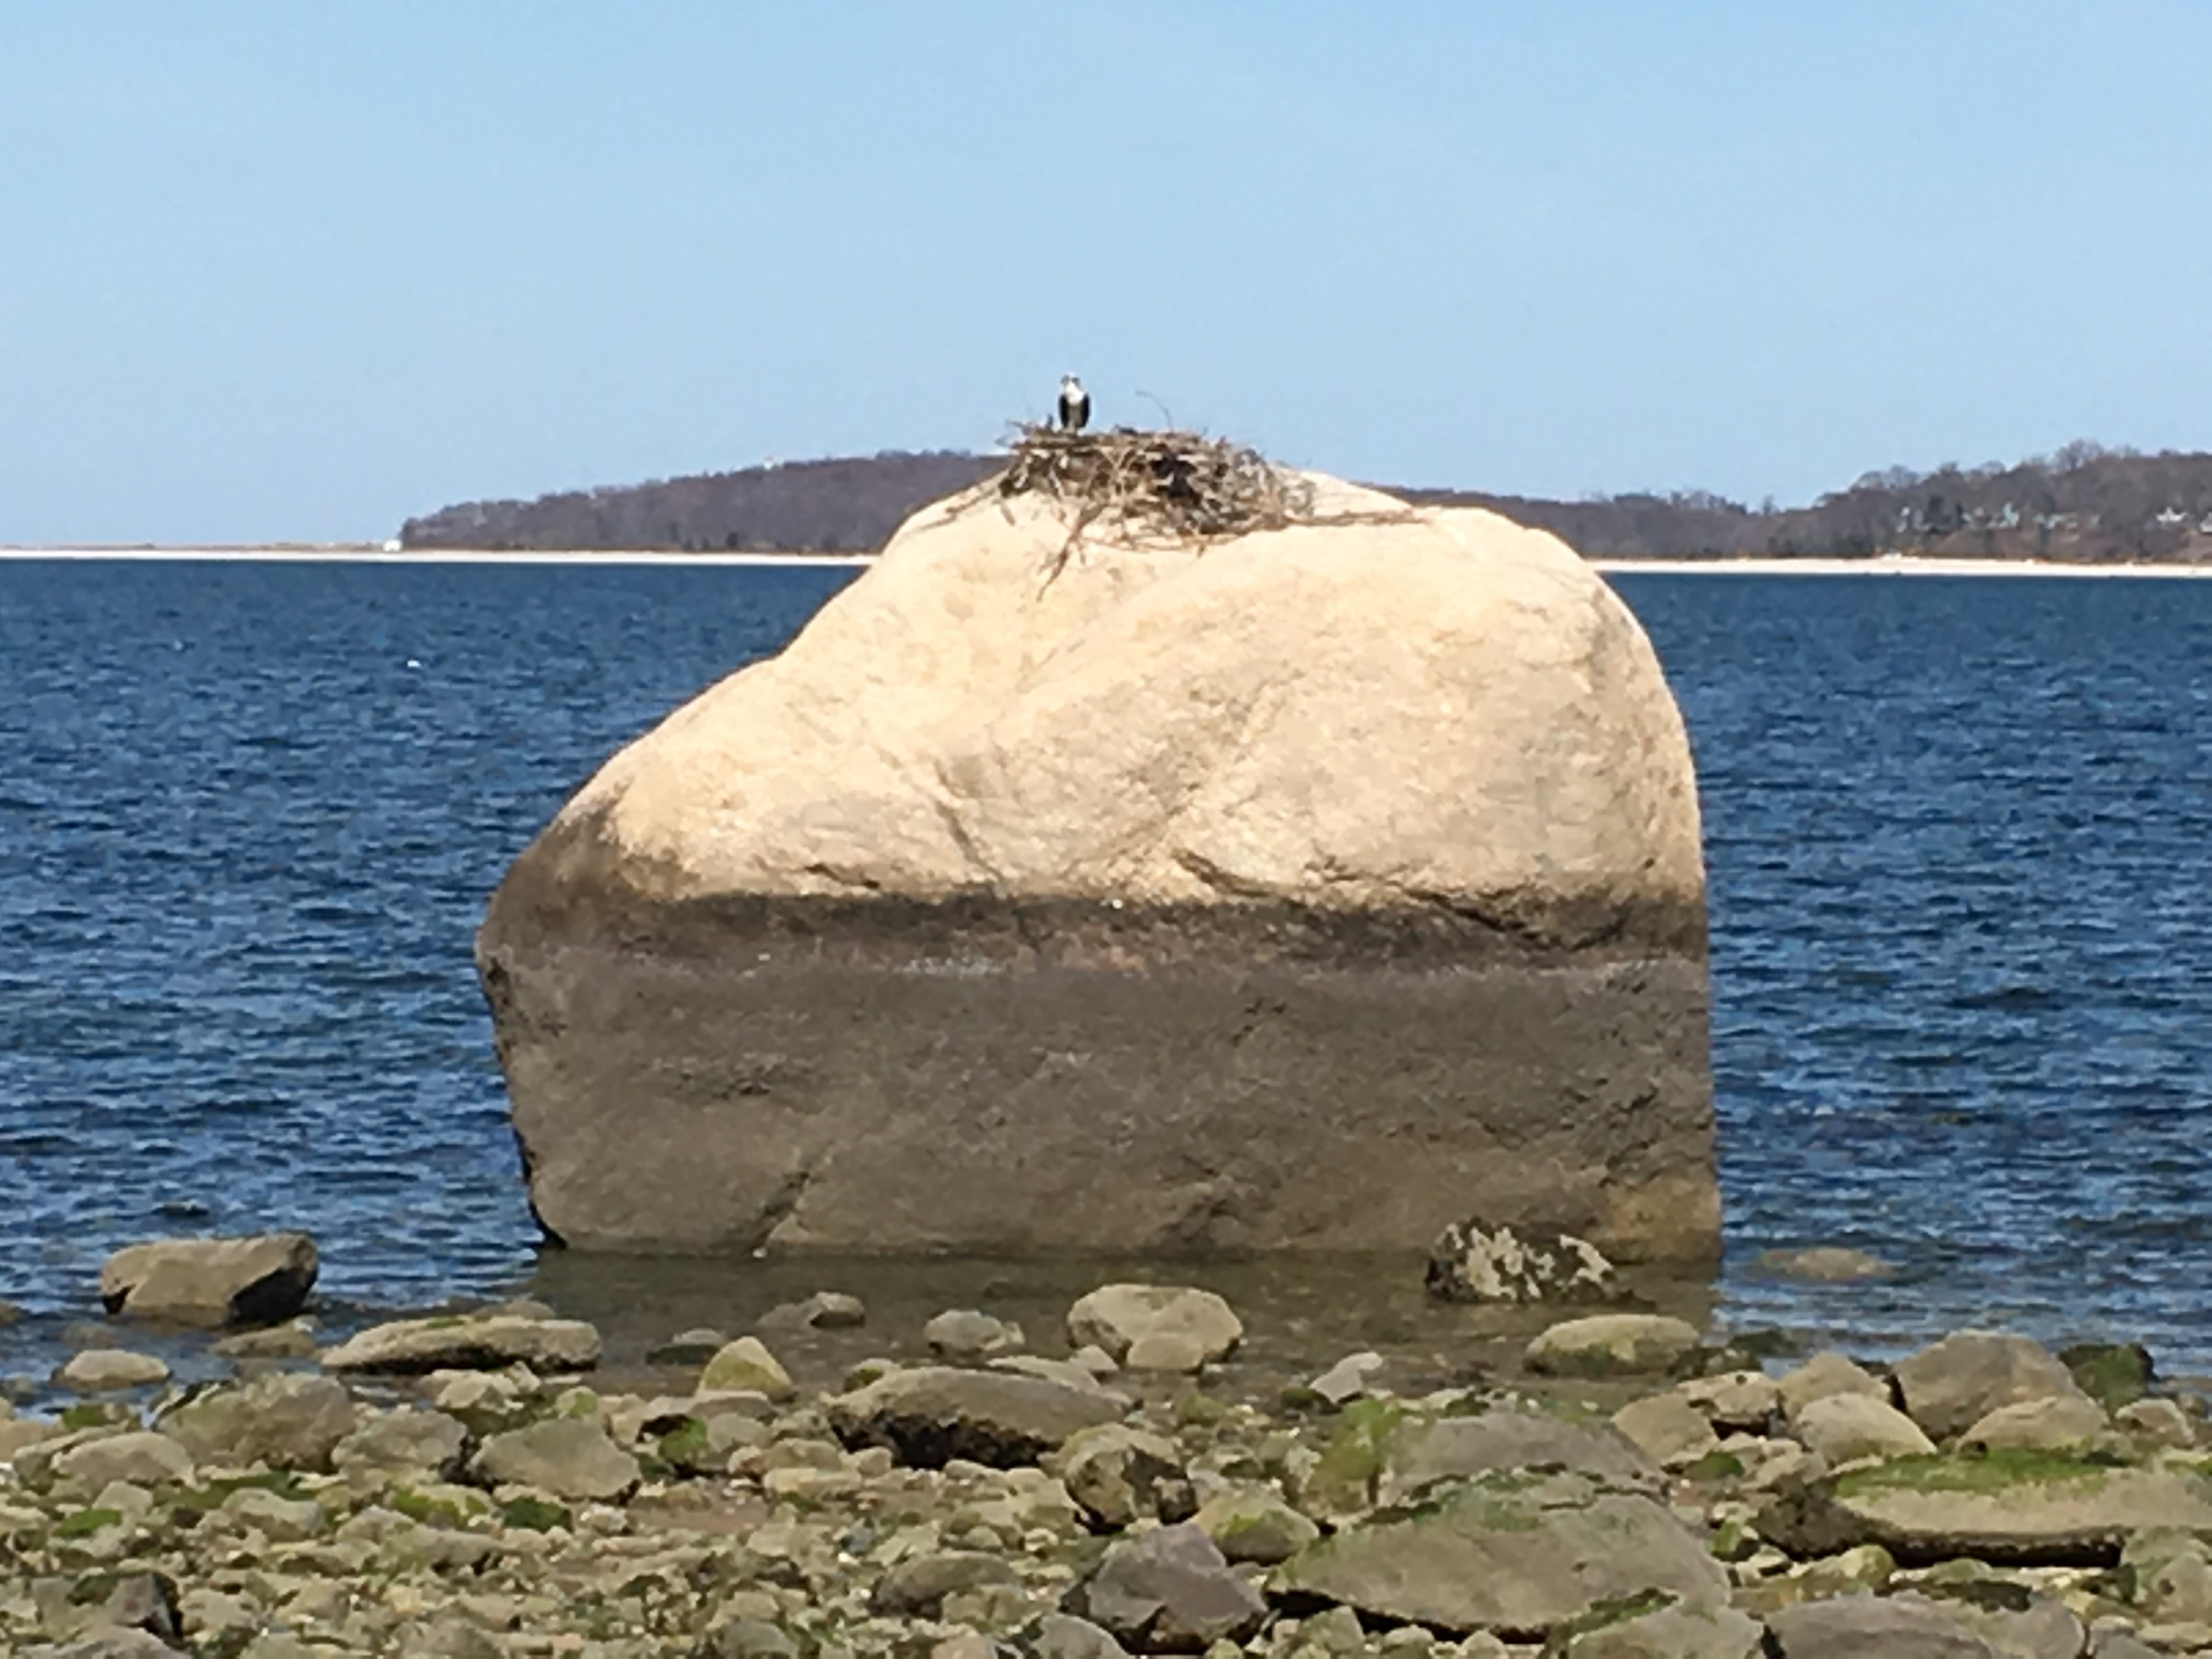 The only famous Huntington boulder not moved by artificial means. Target Rock still sits where the glacier left it off the east side of Lloyd's Neck. (Although technically in Oyster Bay, we can claim it as Huntington's)